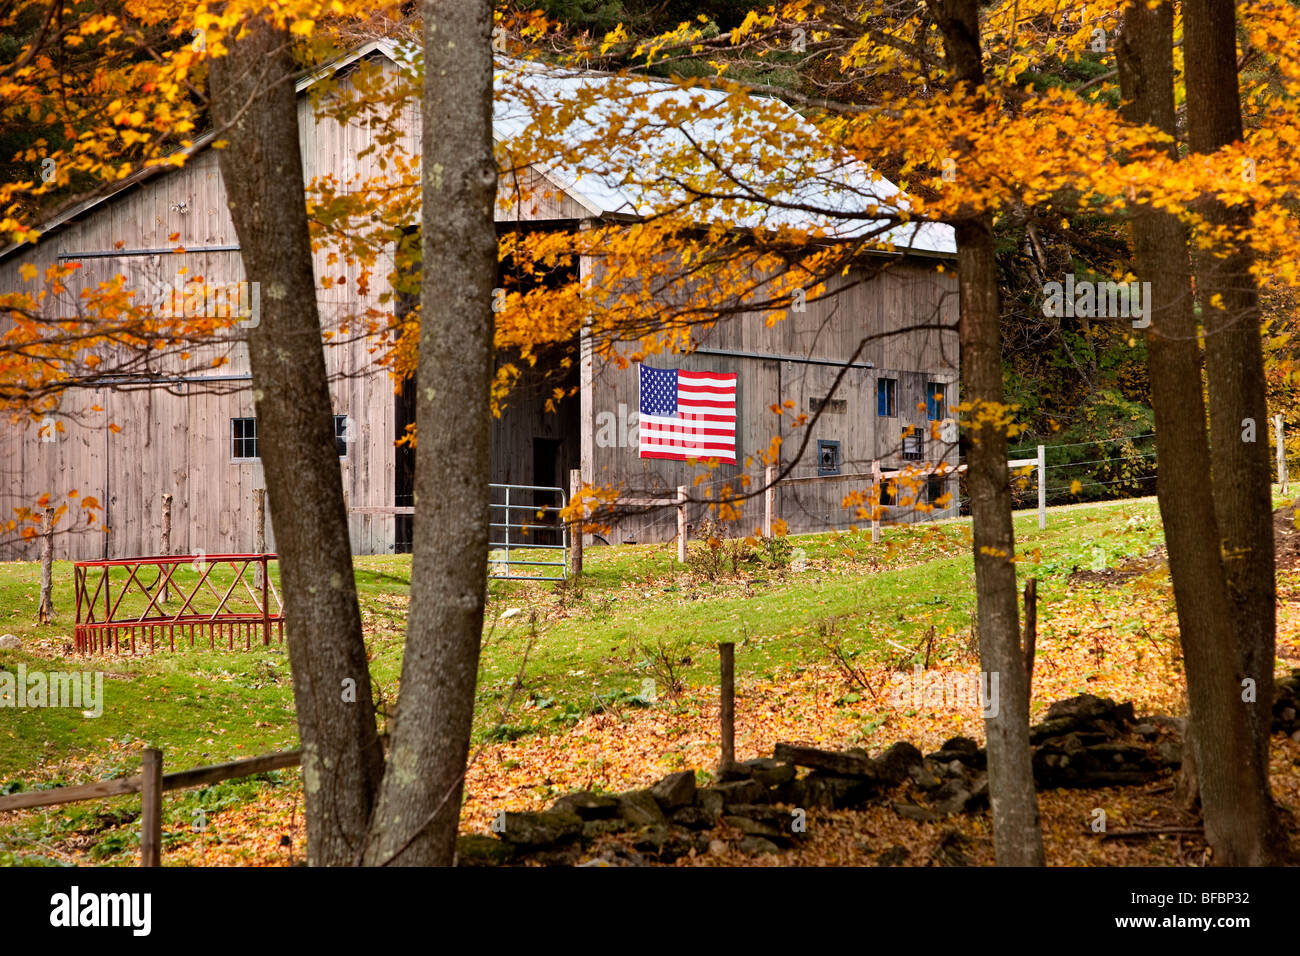 Barn with American flag in autumn near Woodstock Vermont USA - Stock Image